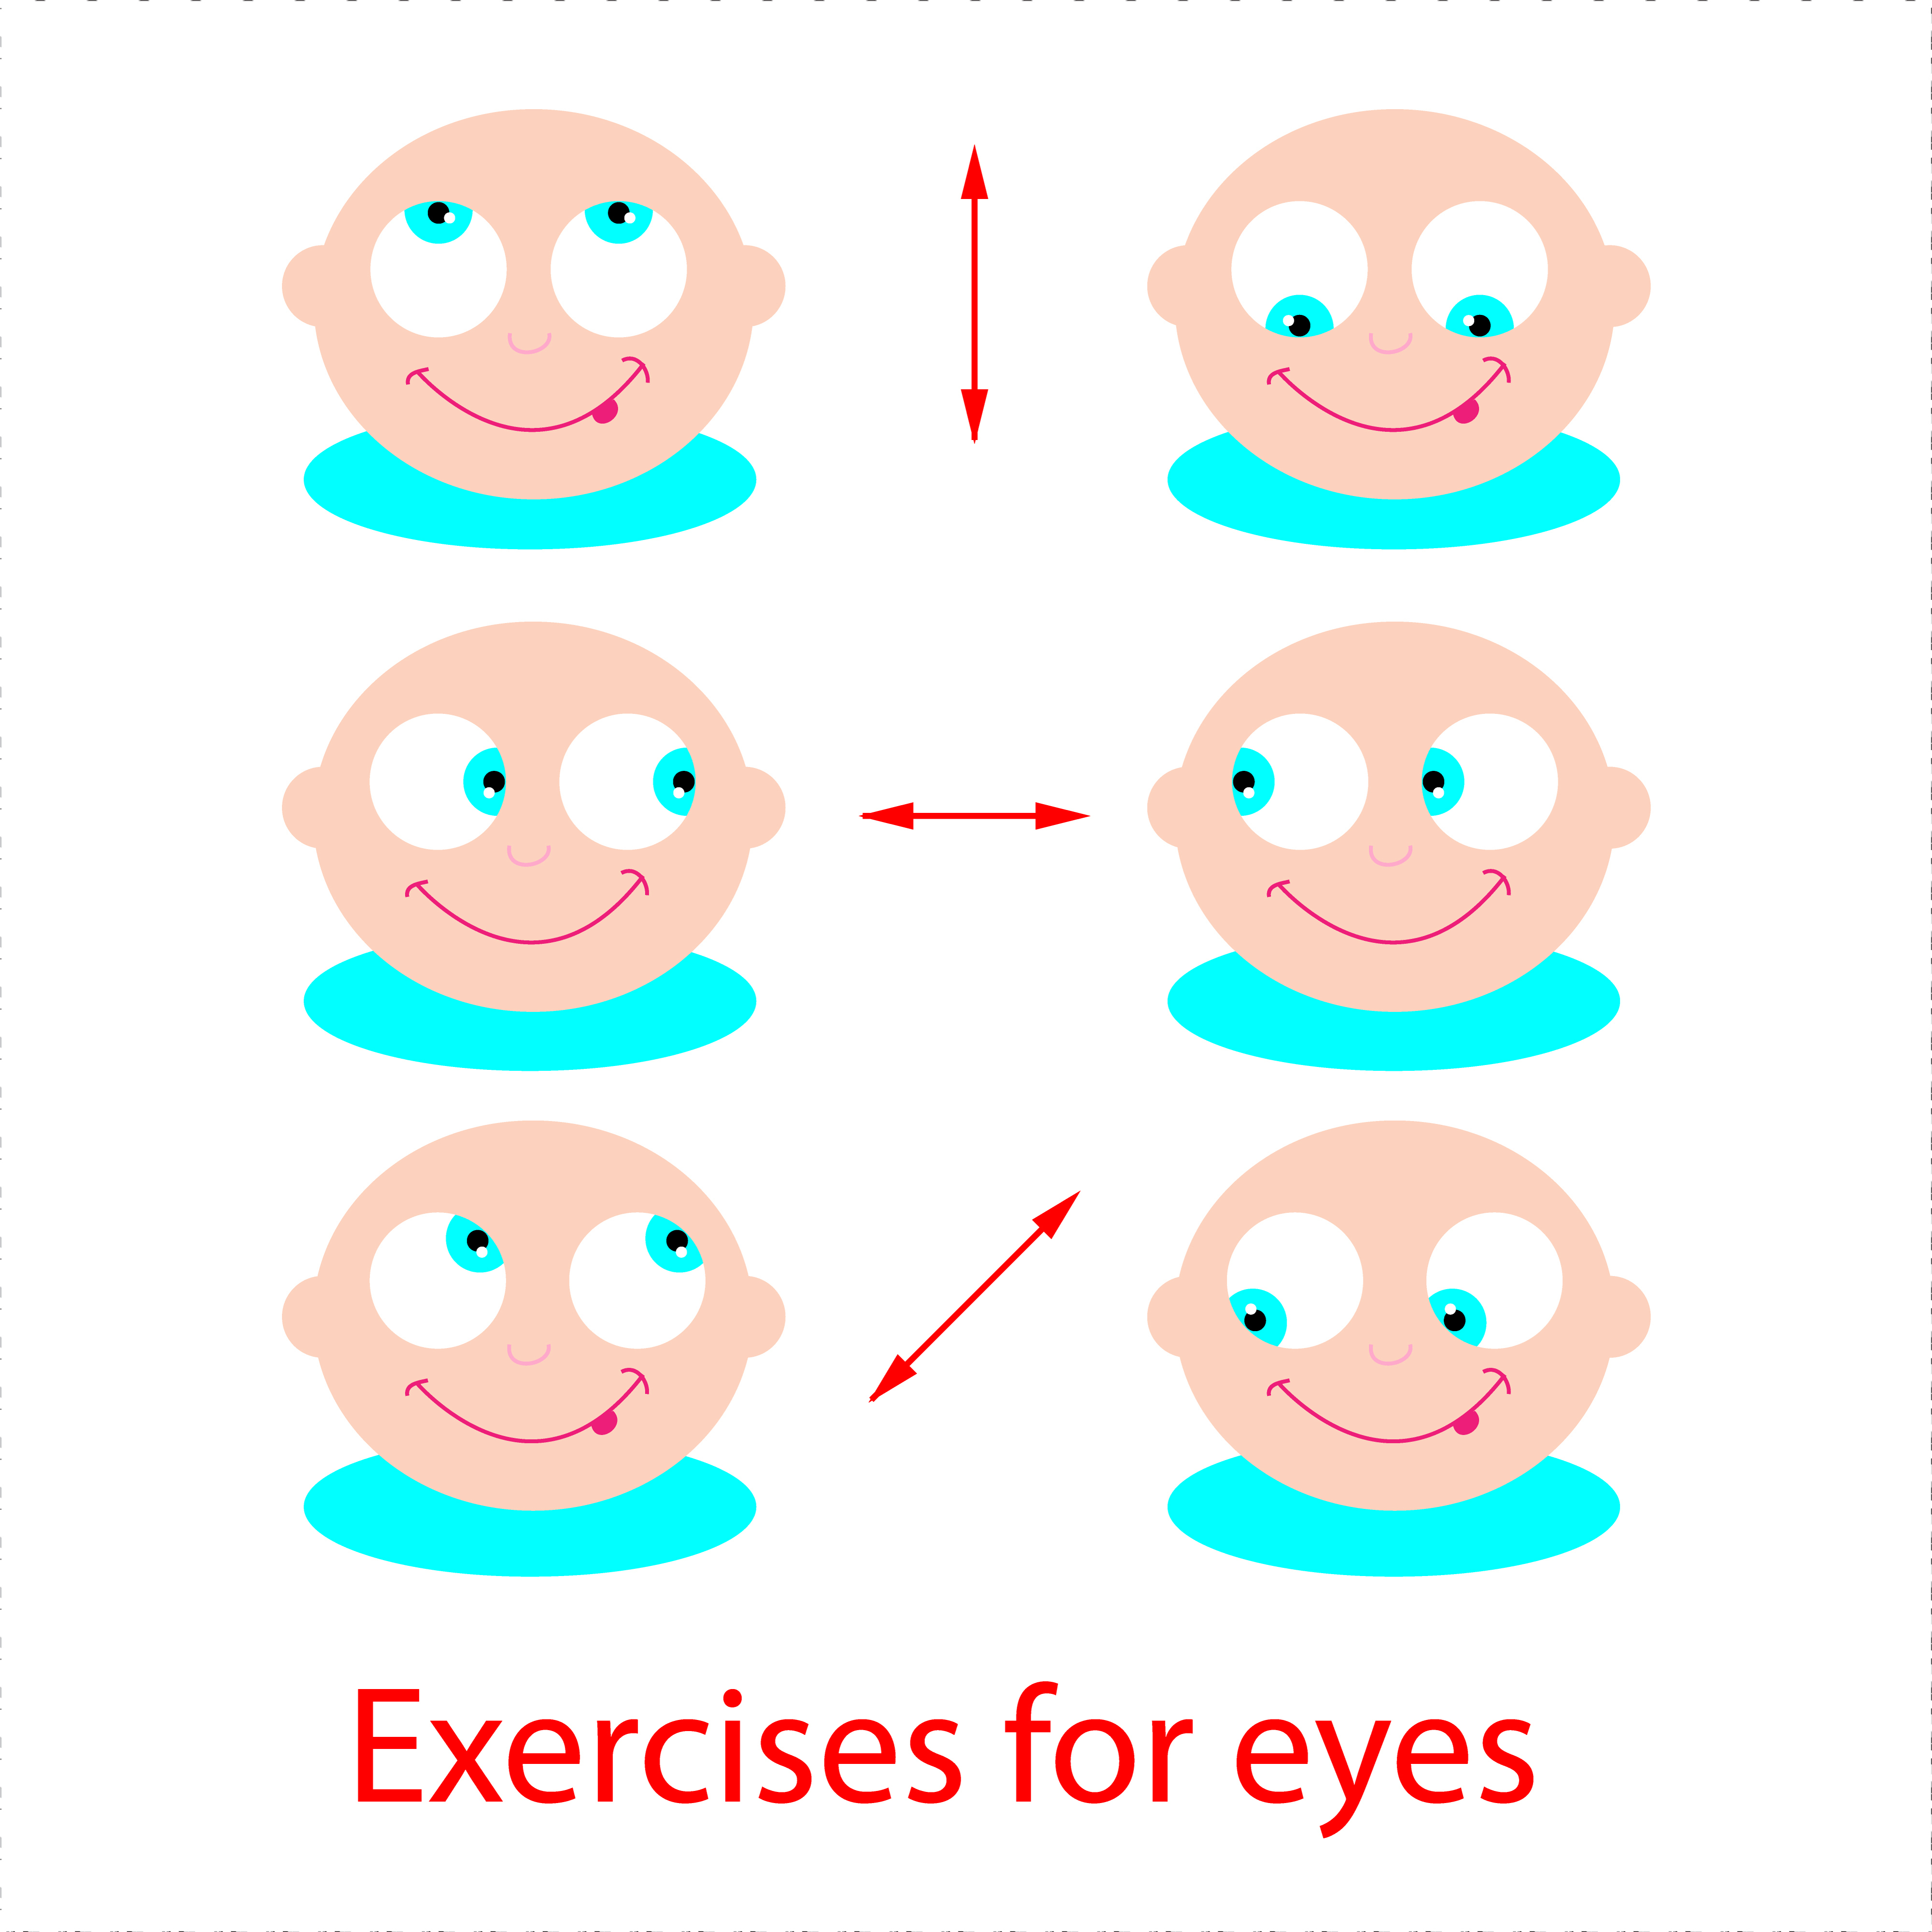 Exercise the muscles around your eyes